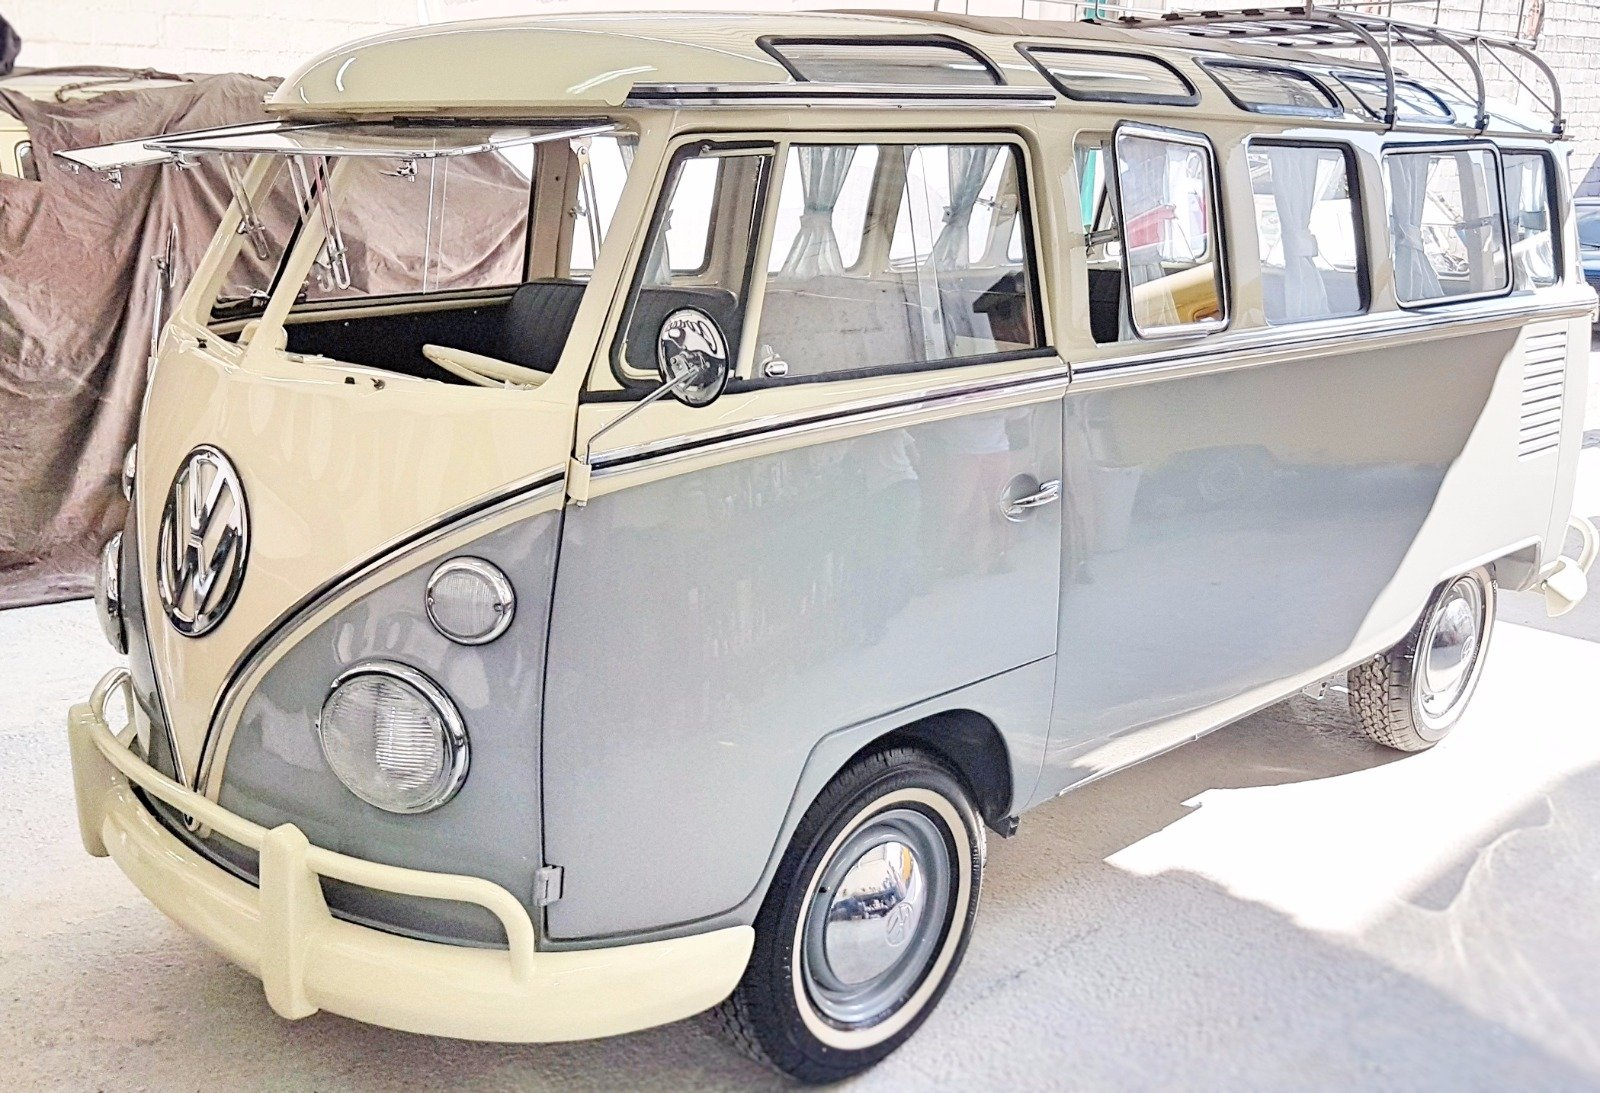 Volkswagen Splitscreen 23Window LHD 1968 Samba Rep For Sale (picture 1 of 5)